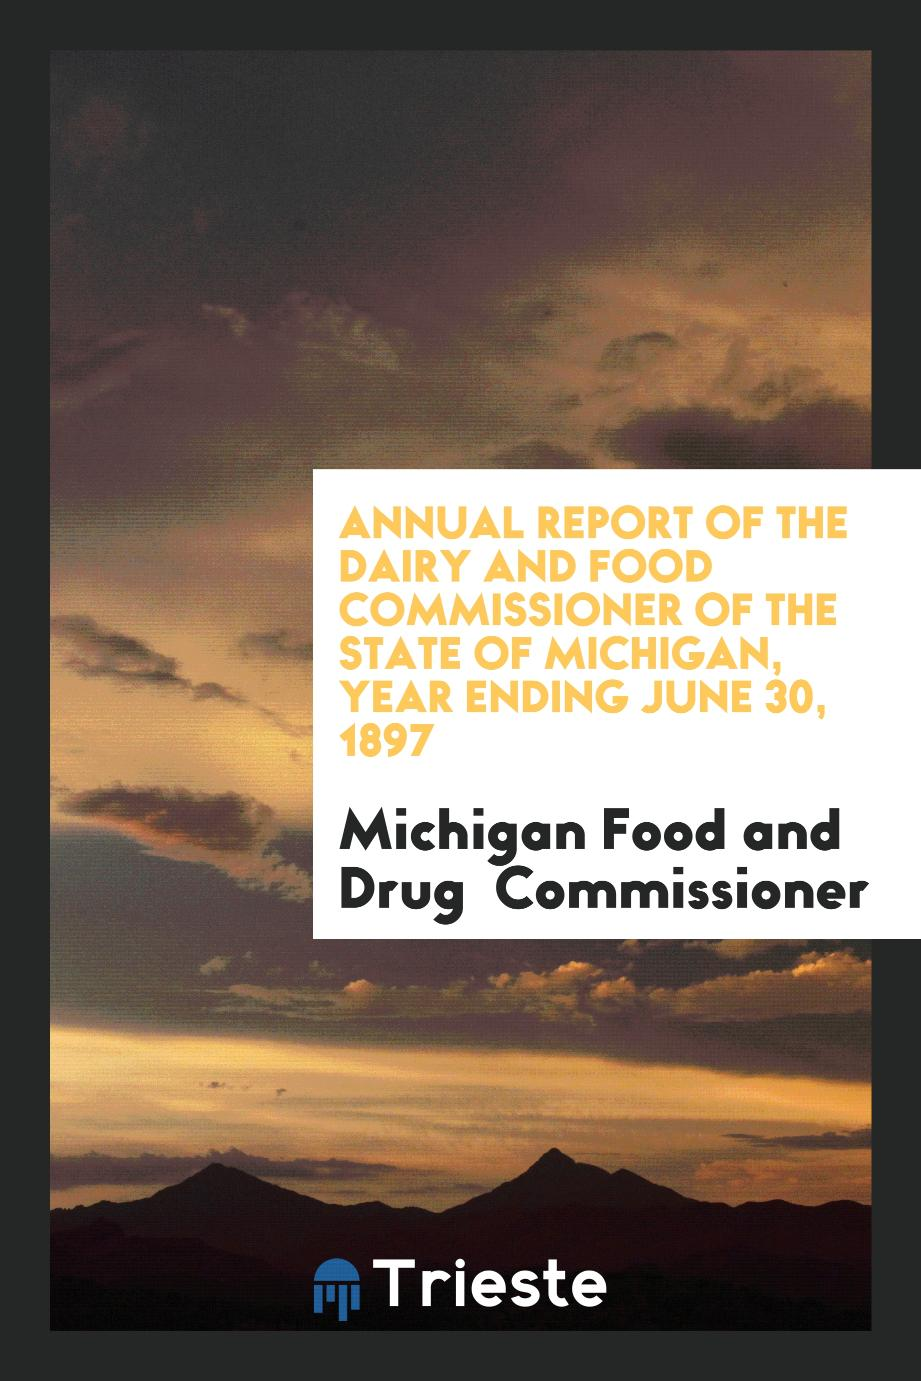 Annual Report of the Dairy and Food Commissioner of the State of Michigan, Year Ending June 30, 1897